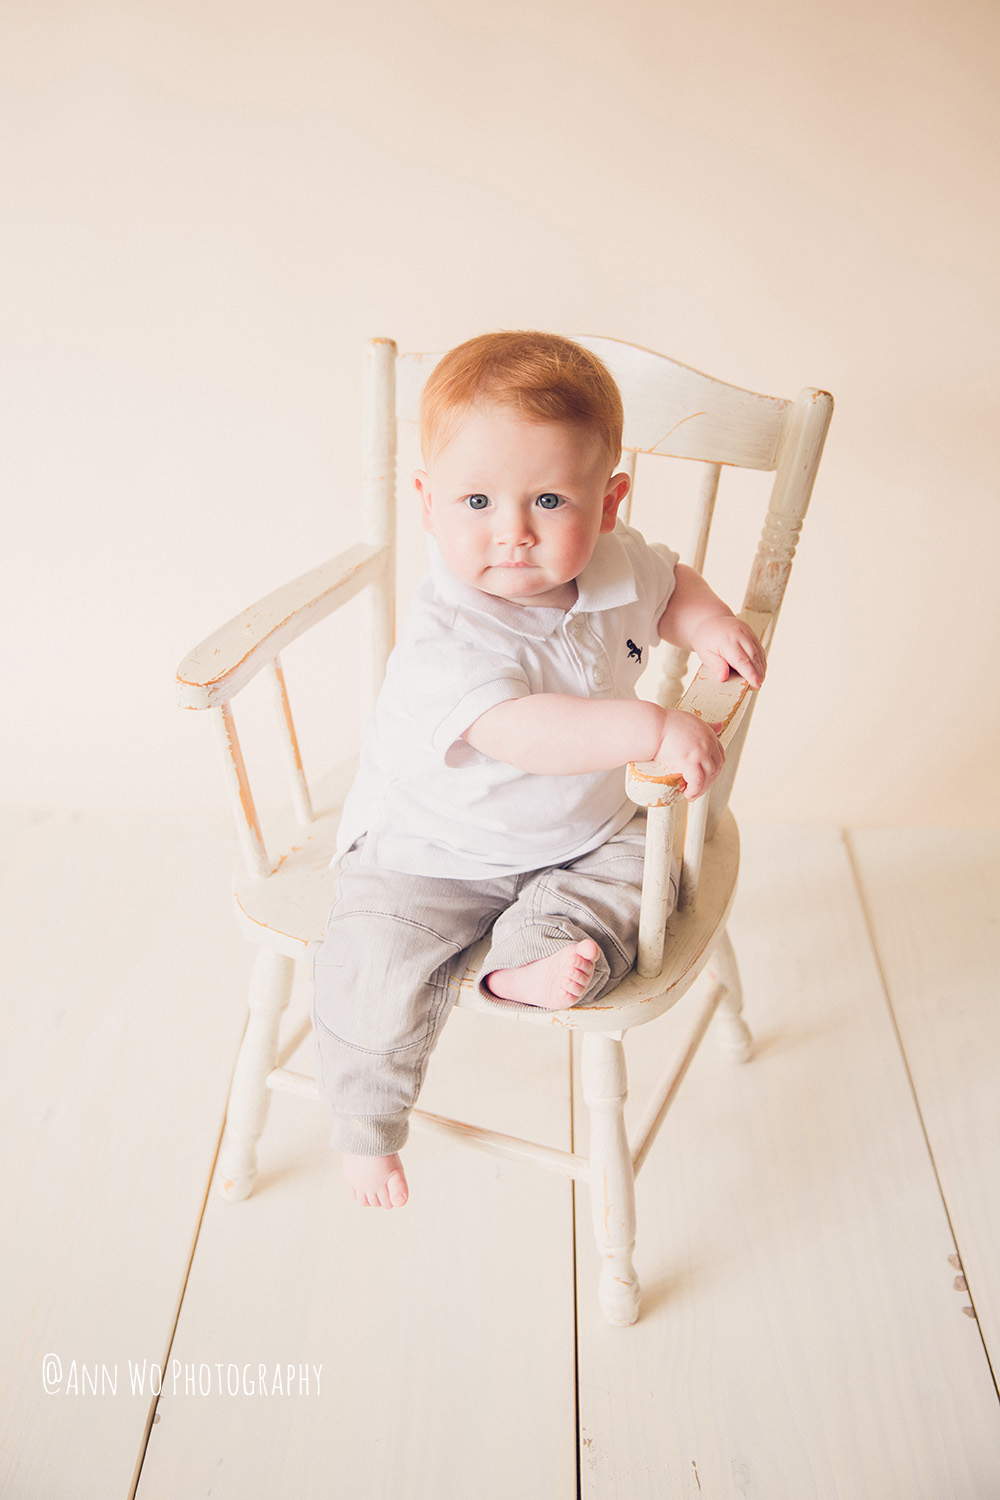 web-baby-photography-london-ann-wo-6-month-boy-sitter-session-04.JPG